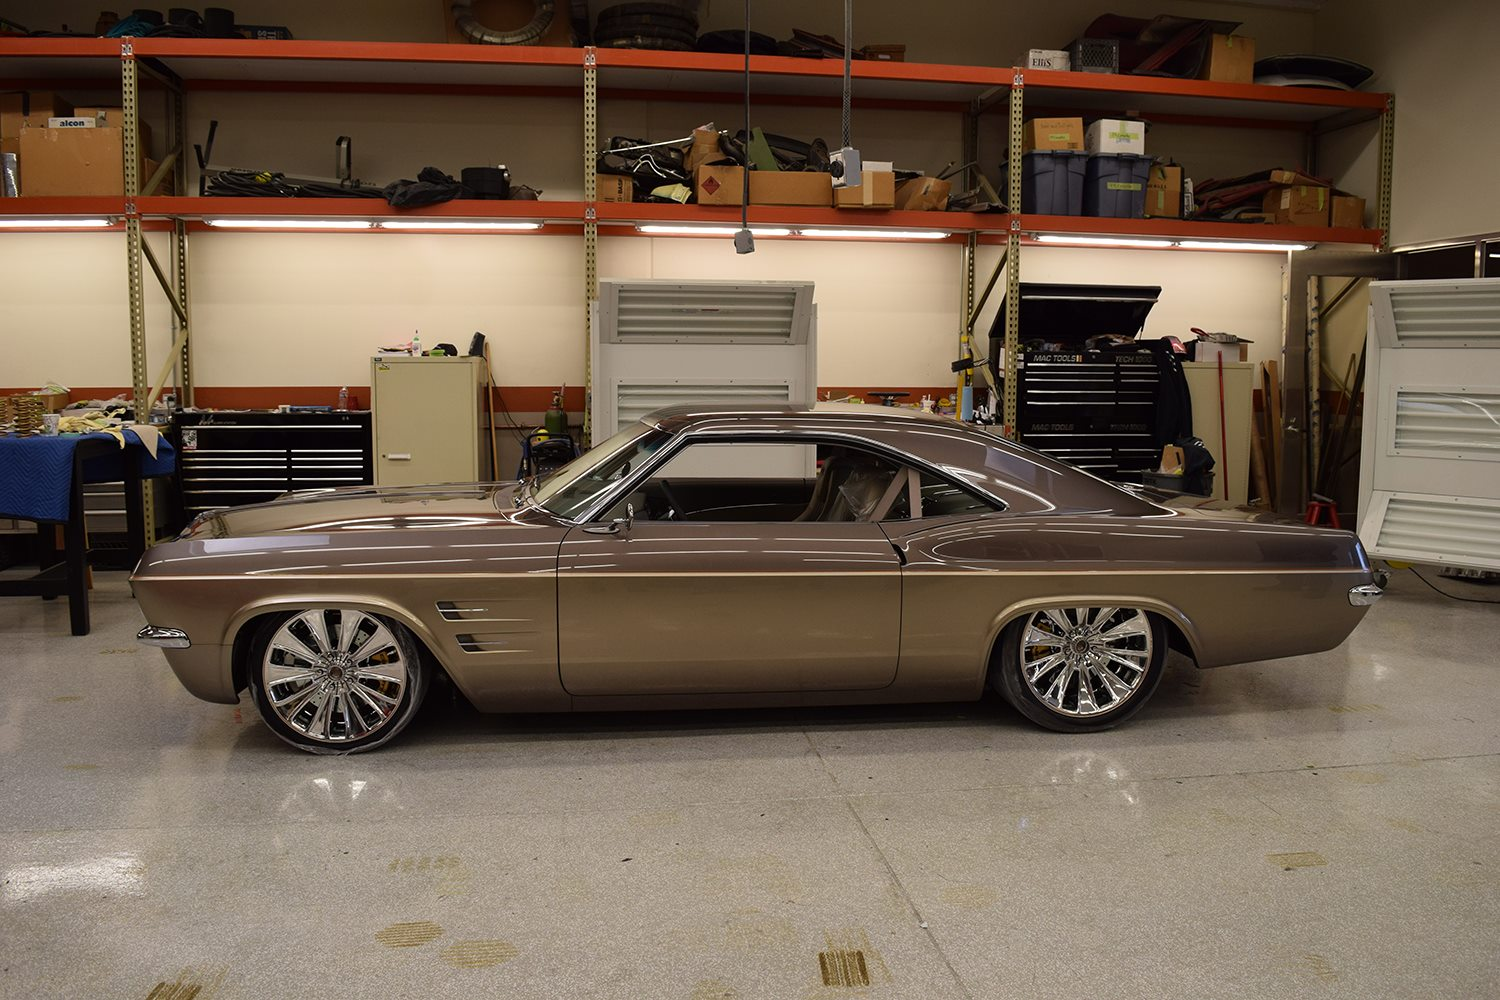 1965 Impala On A Corvette Chassis Wins Fourth Ridler Award For Foose 1966 Chevy Frame Imposter With 2009